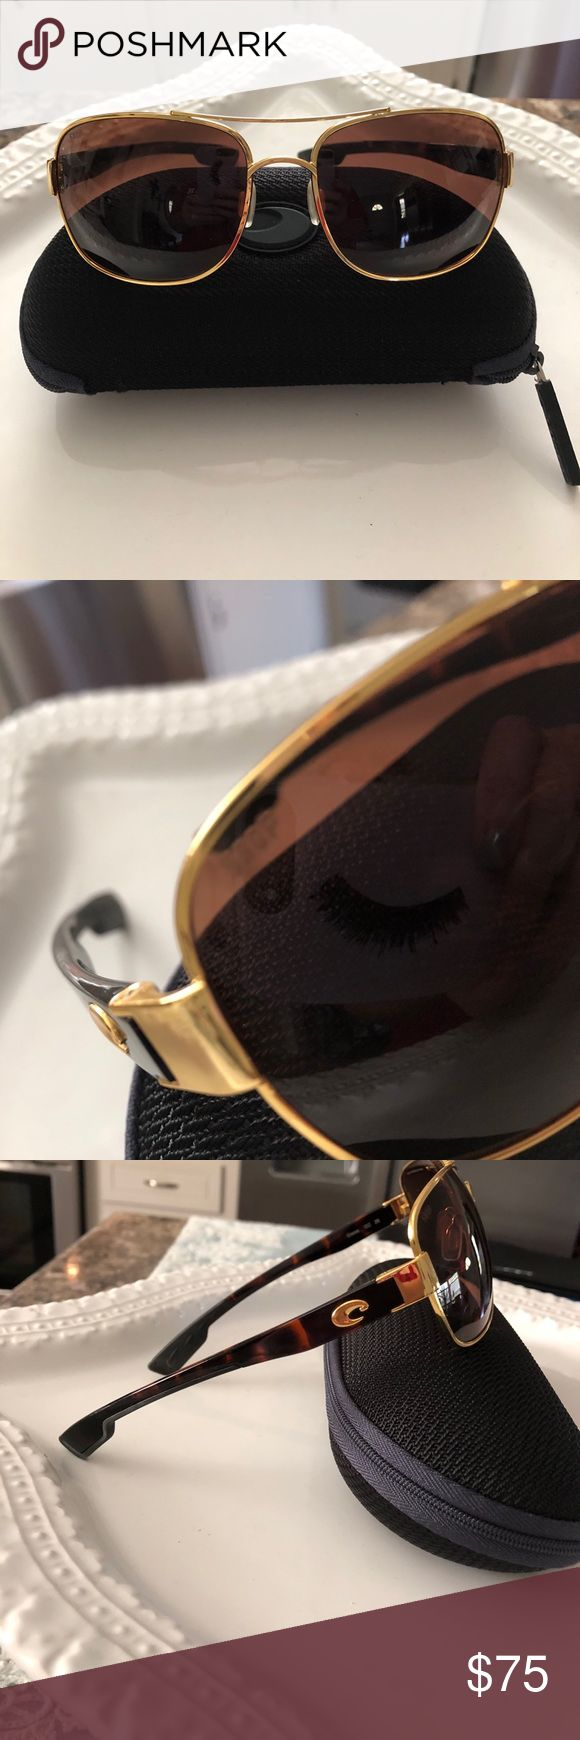 Costa Del Mar sunglasses Costa Del Mar sunglasses POLARIZED COCOS IS THE STYLE SOME SCRATCHES ON THE LENS NOT TO BAD THOUGH HAS CASE STILL IN GREAT CONDITION Costa Del Mar Accessories Sunglasses